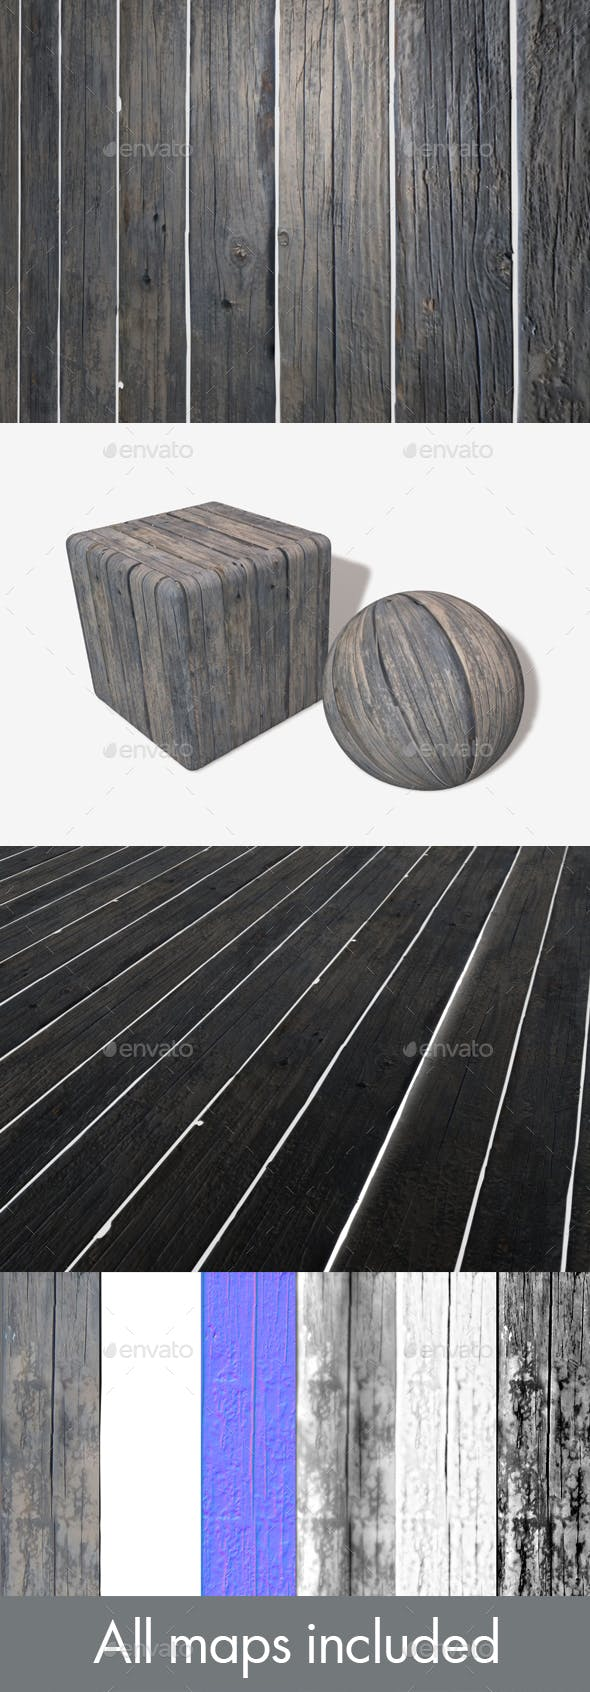 Old Wooden Planks Seamless Texture - 3DOcean Item for Sale